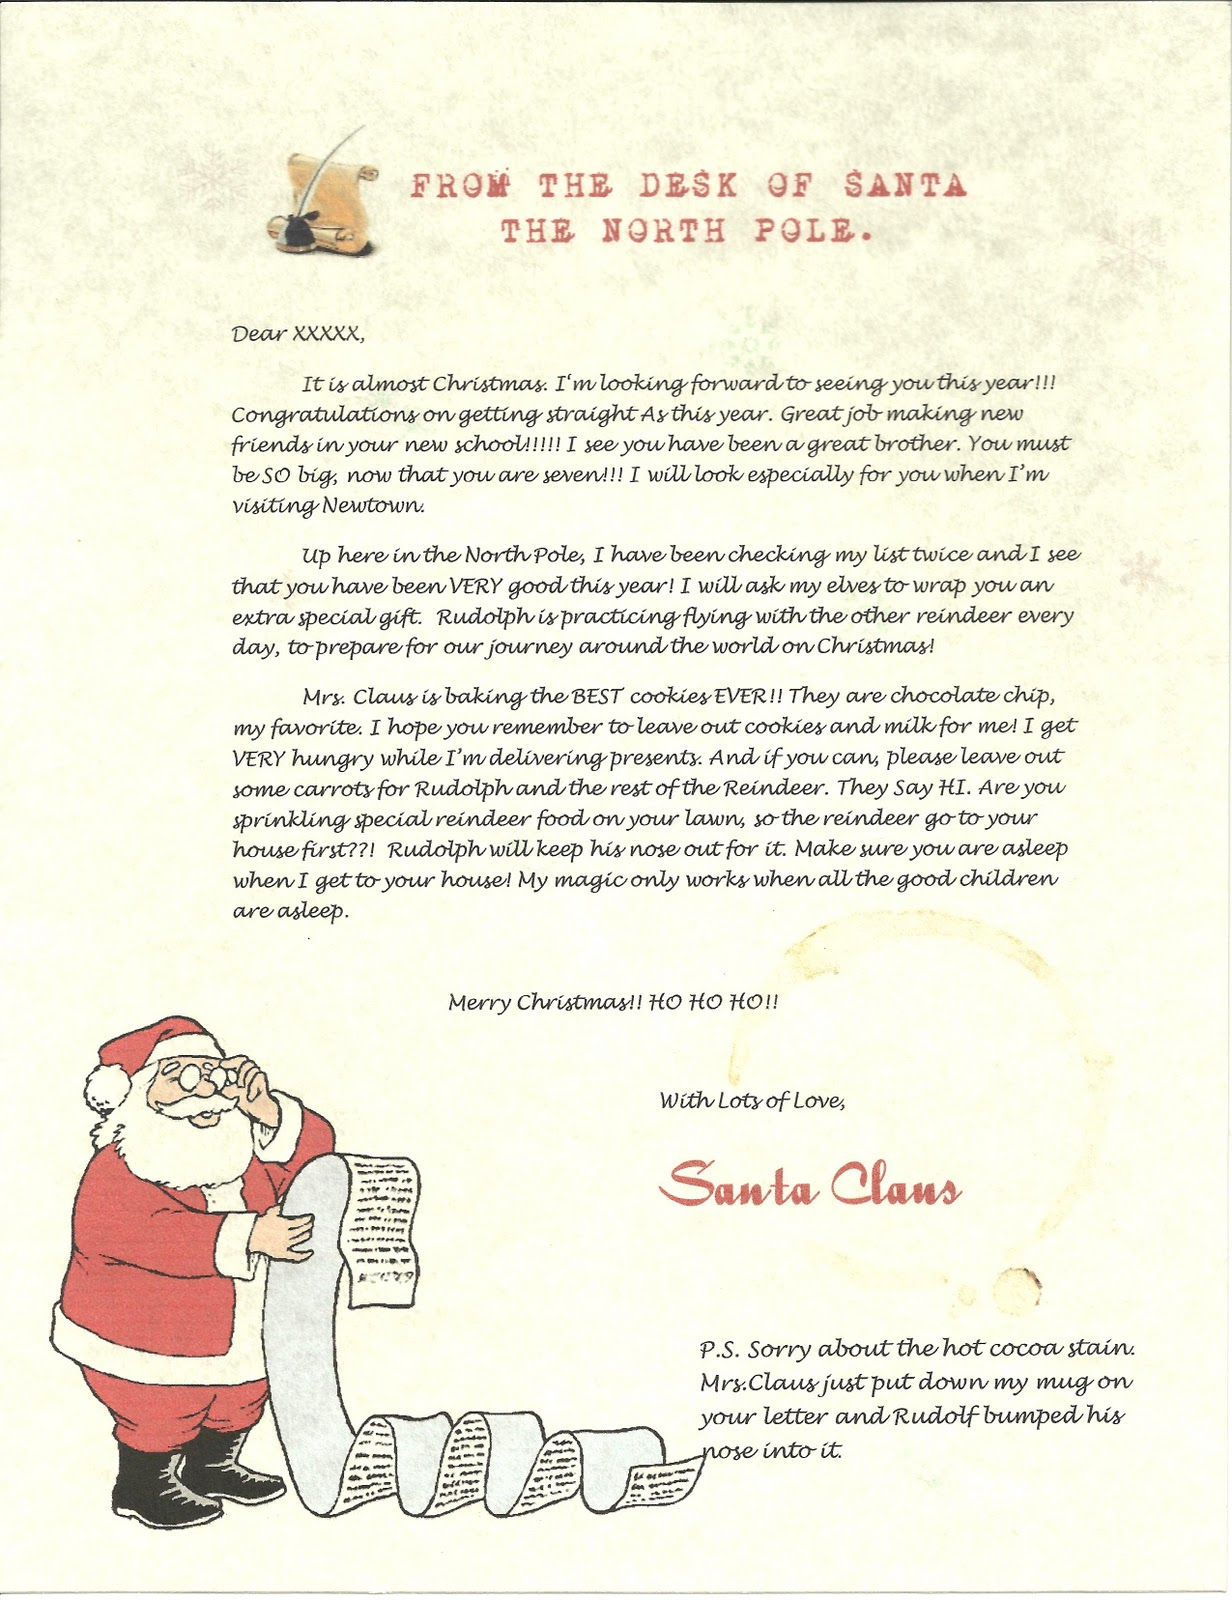 Free cover letter templates write a letter to santa claus north write a letter to santa claus north pole search and download free cover letter templates collections download for free for commercial or non commercial spiritdancerdesigns Gallery